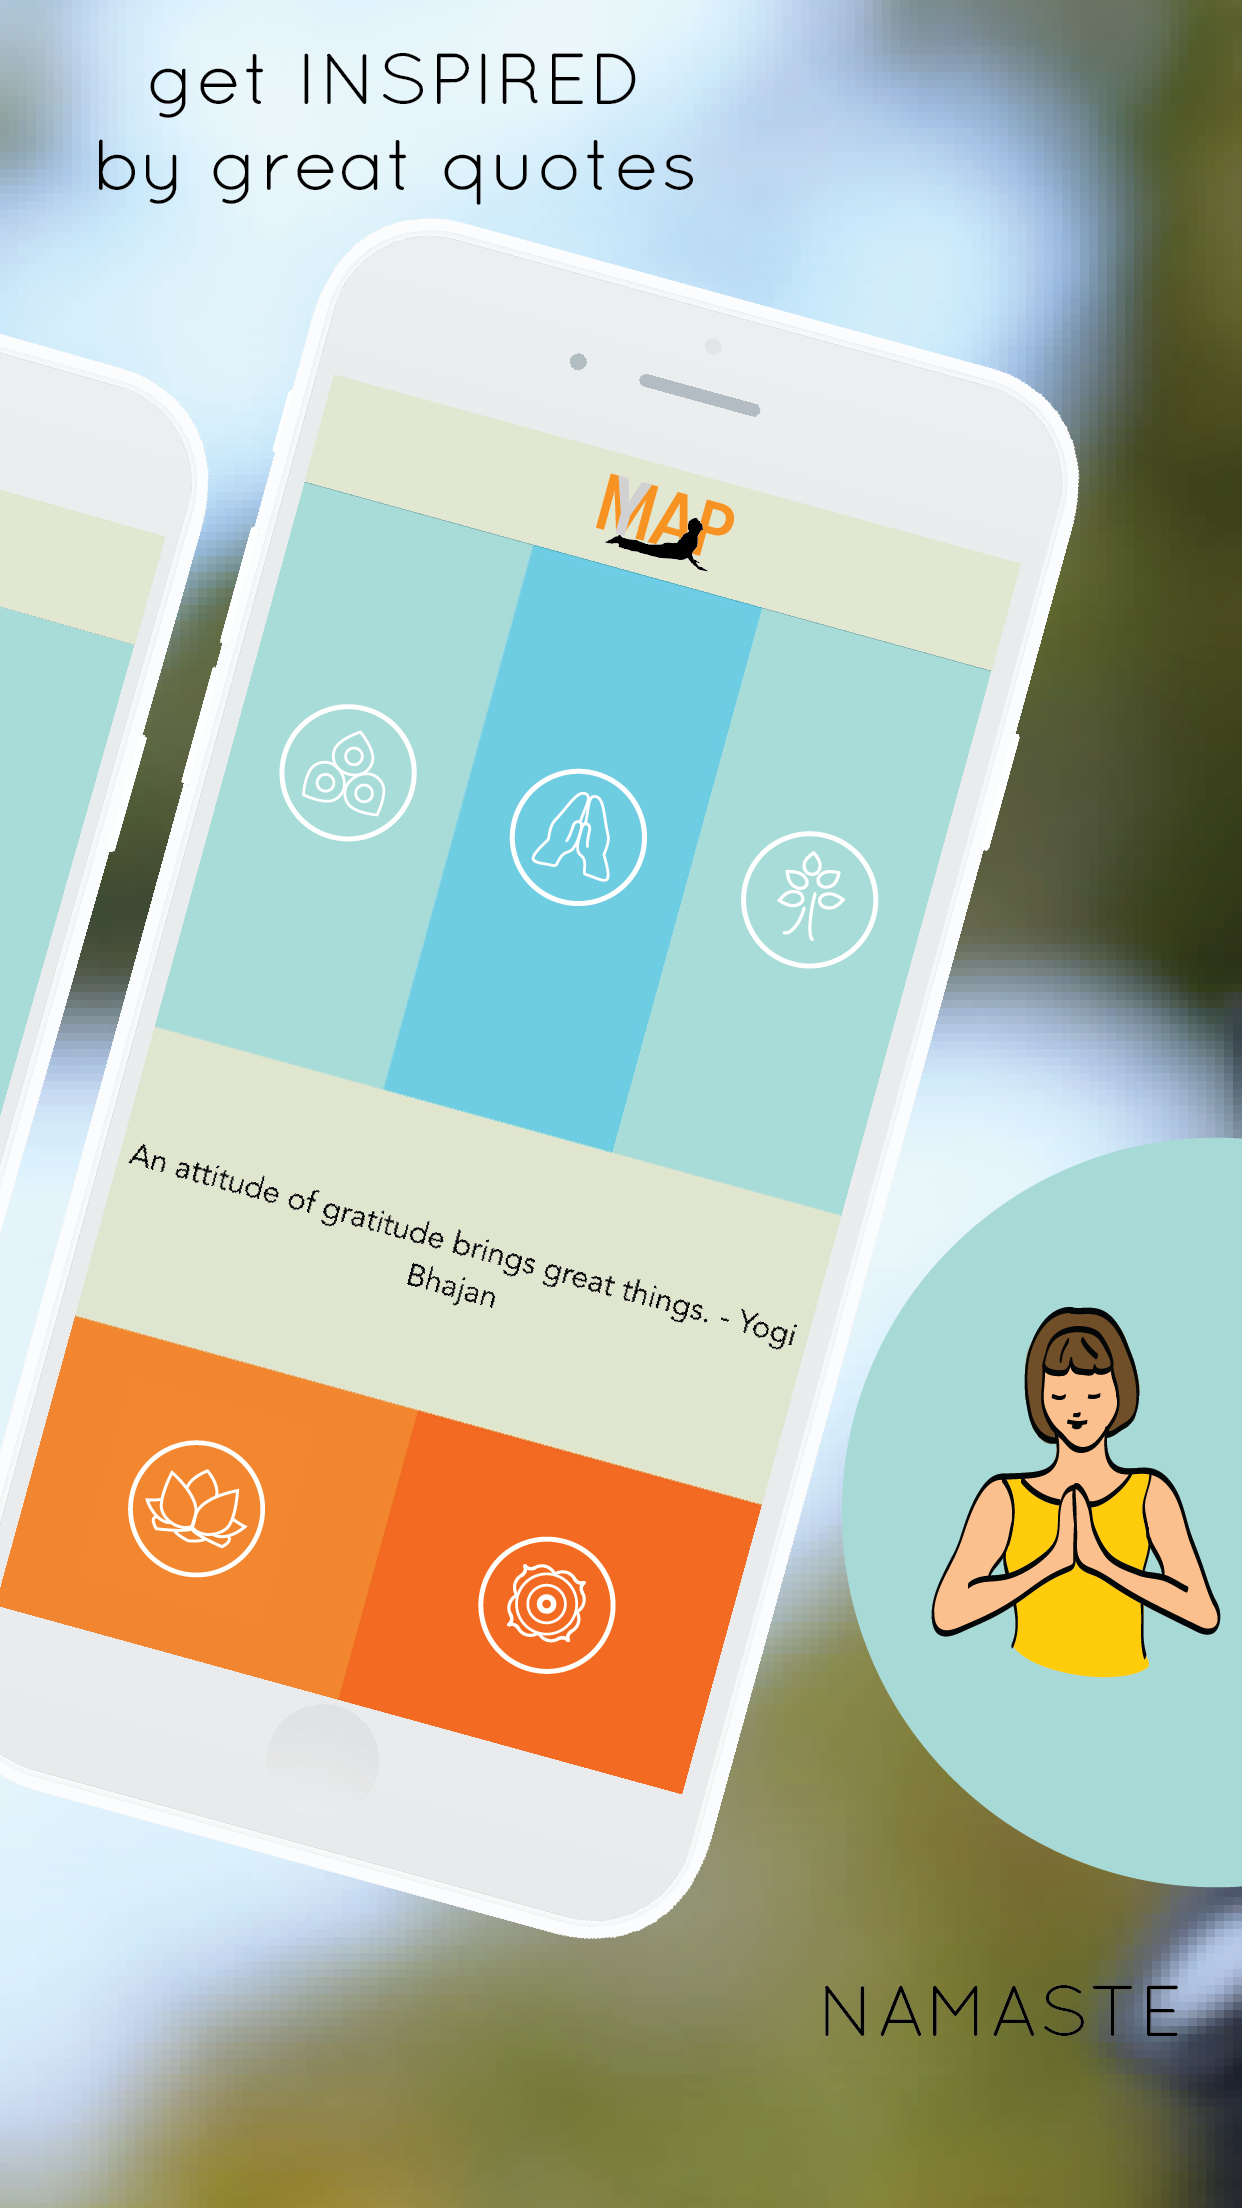 yogamap app - 7 minute yoga exercises, poses, meditation, breath and progress tracking